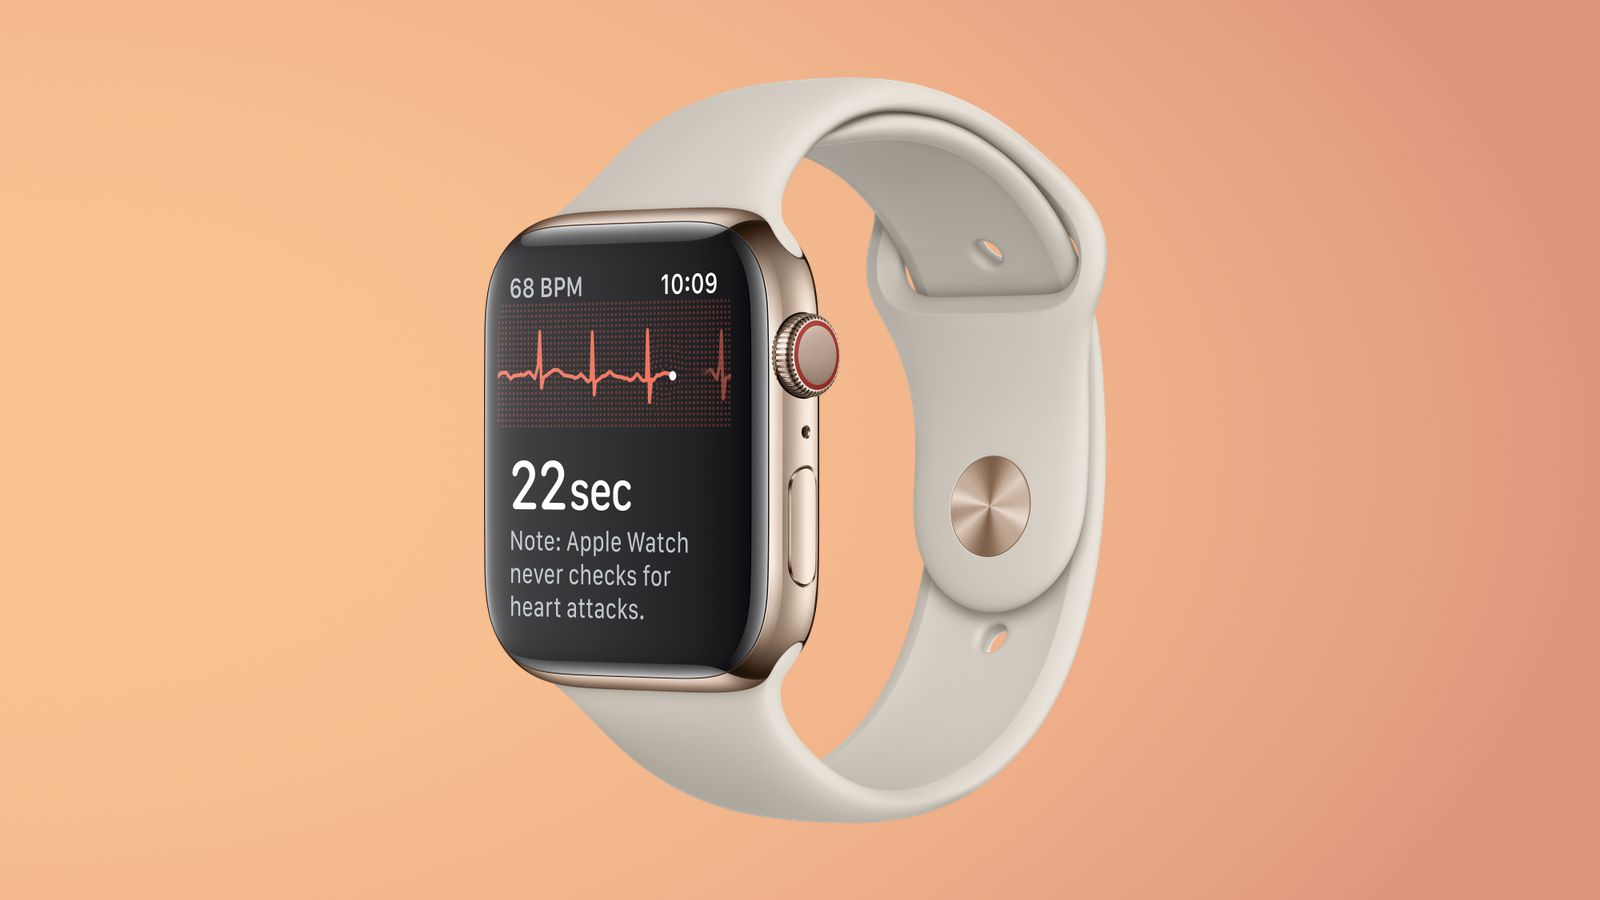 Apple Watch Likely to Gain Blood Pressure, Blood Glucose, and Blood Alcohol Monitoring